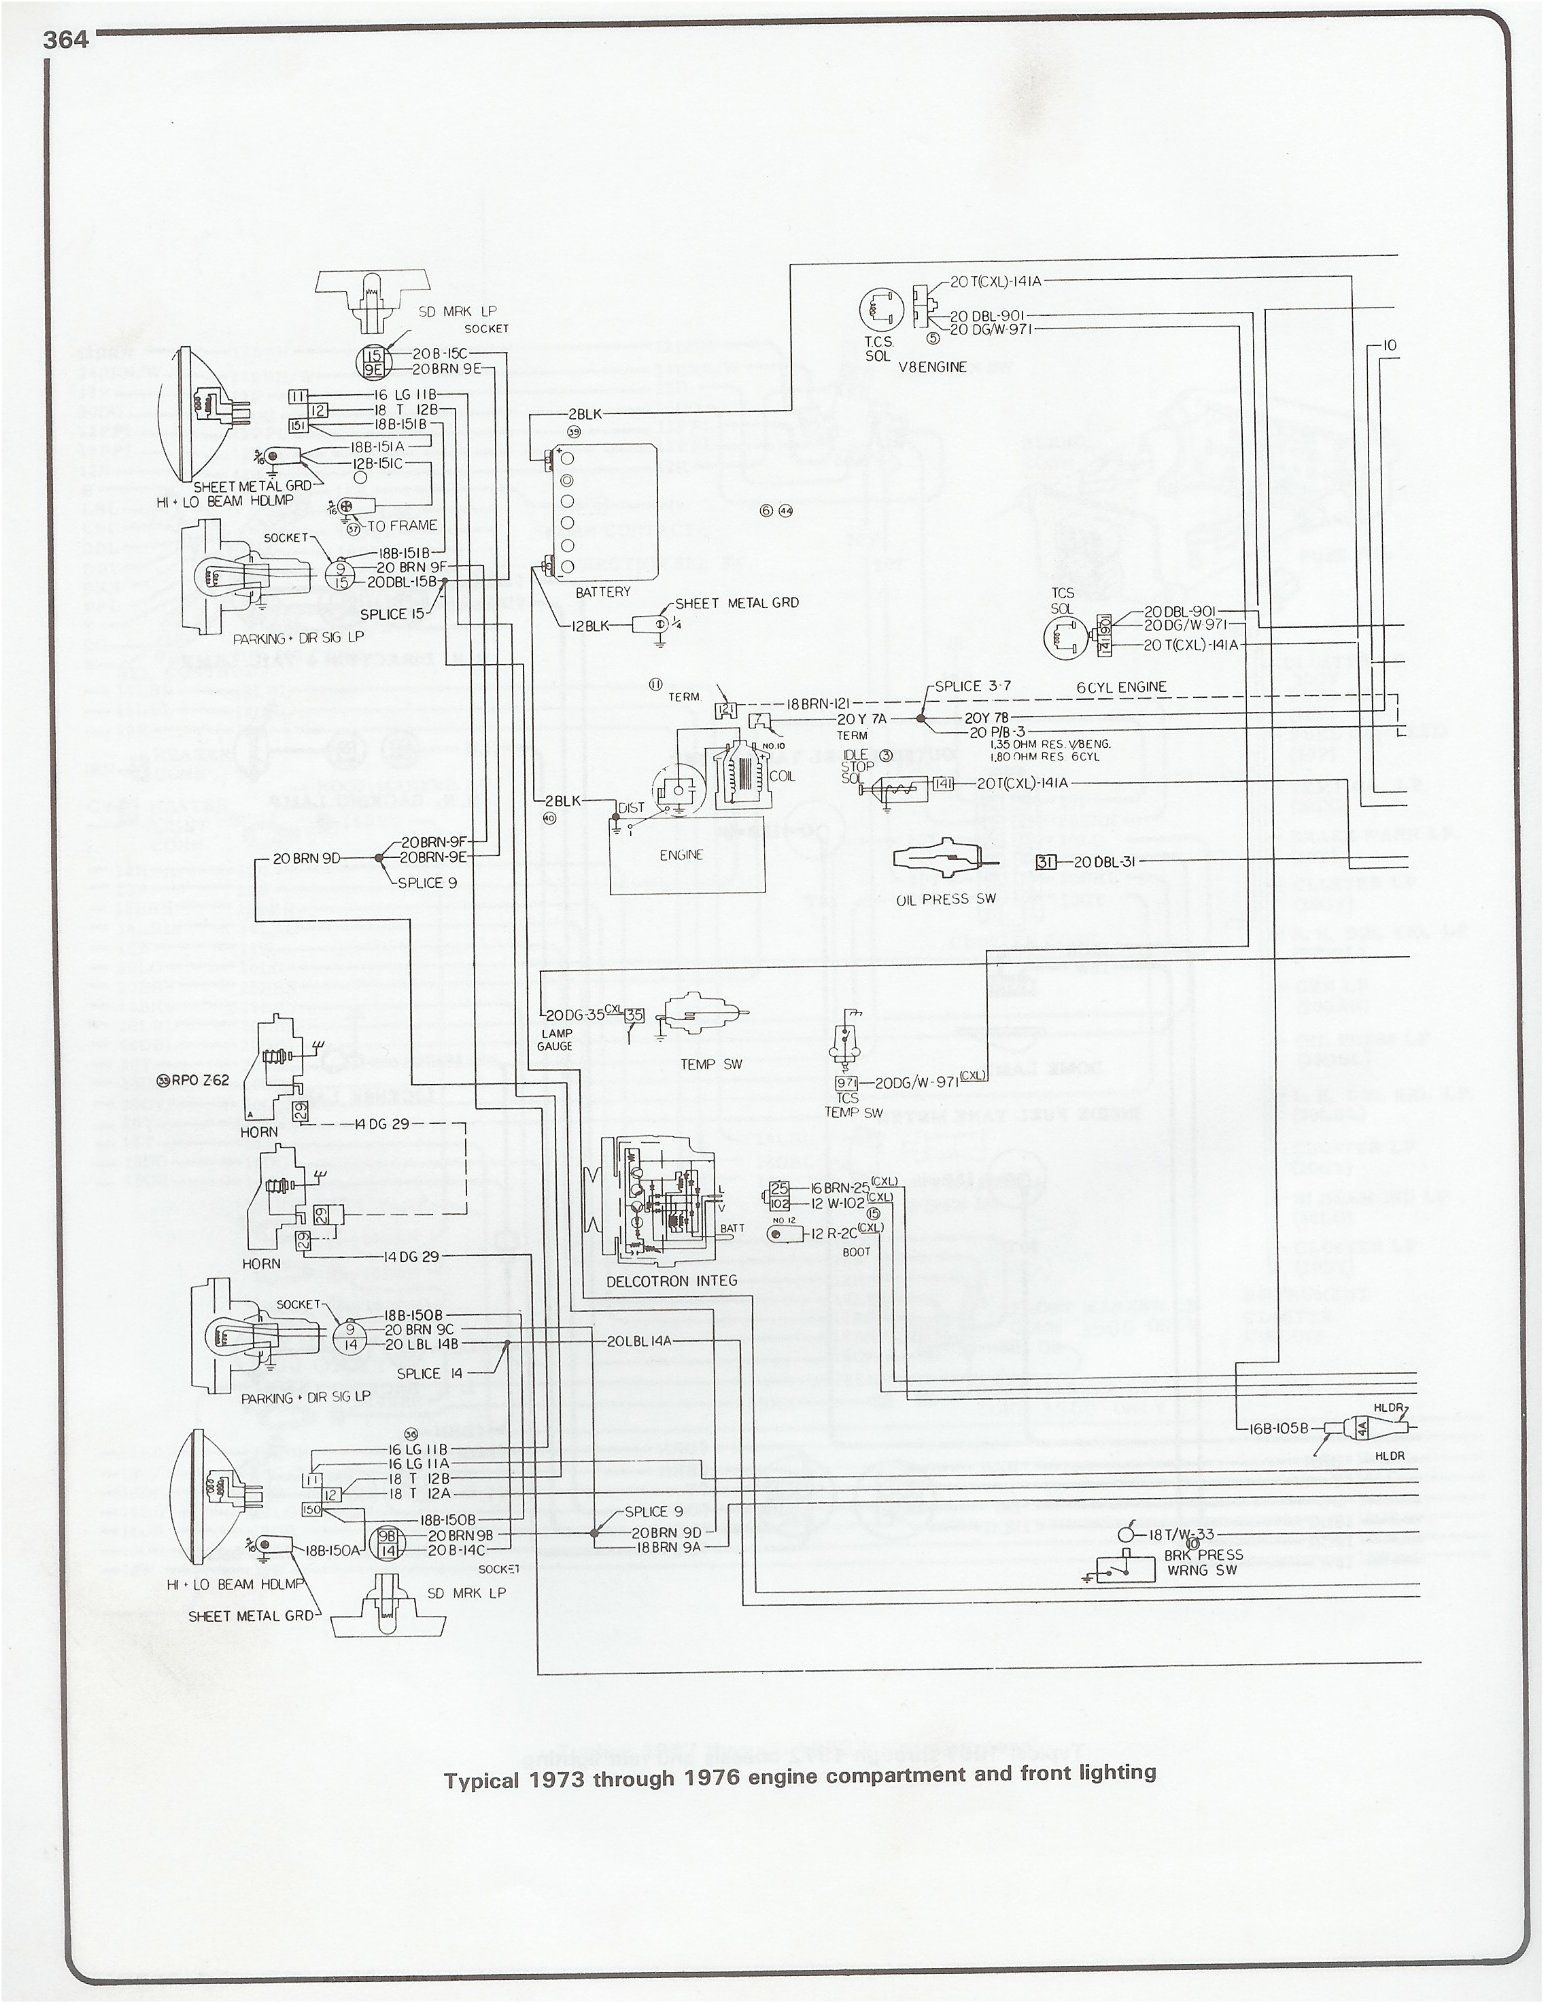 engine wiring diagram 75 350 ci chevy van wiring diagram blog 1976 350 chevy engine diagram [ 1544 x 2003 Pixel ]